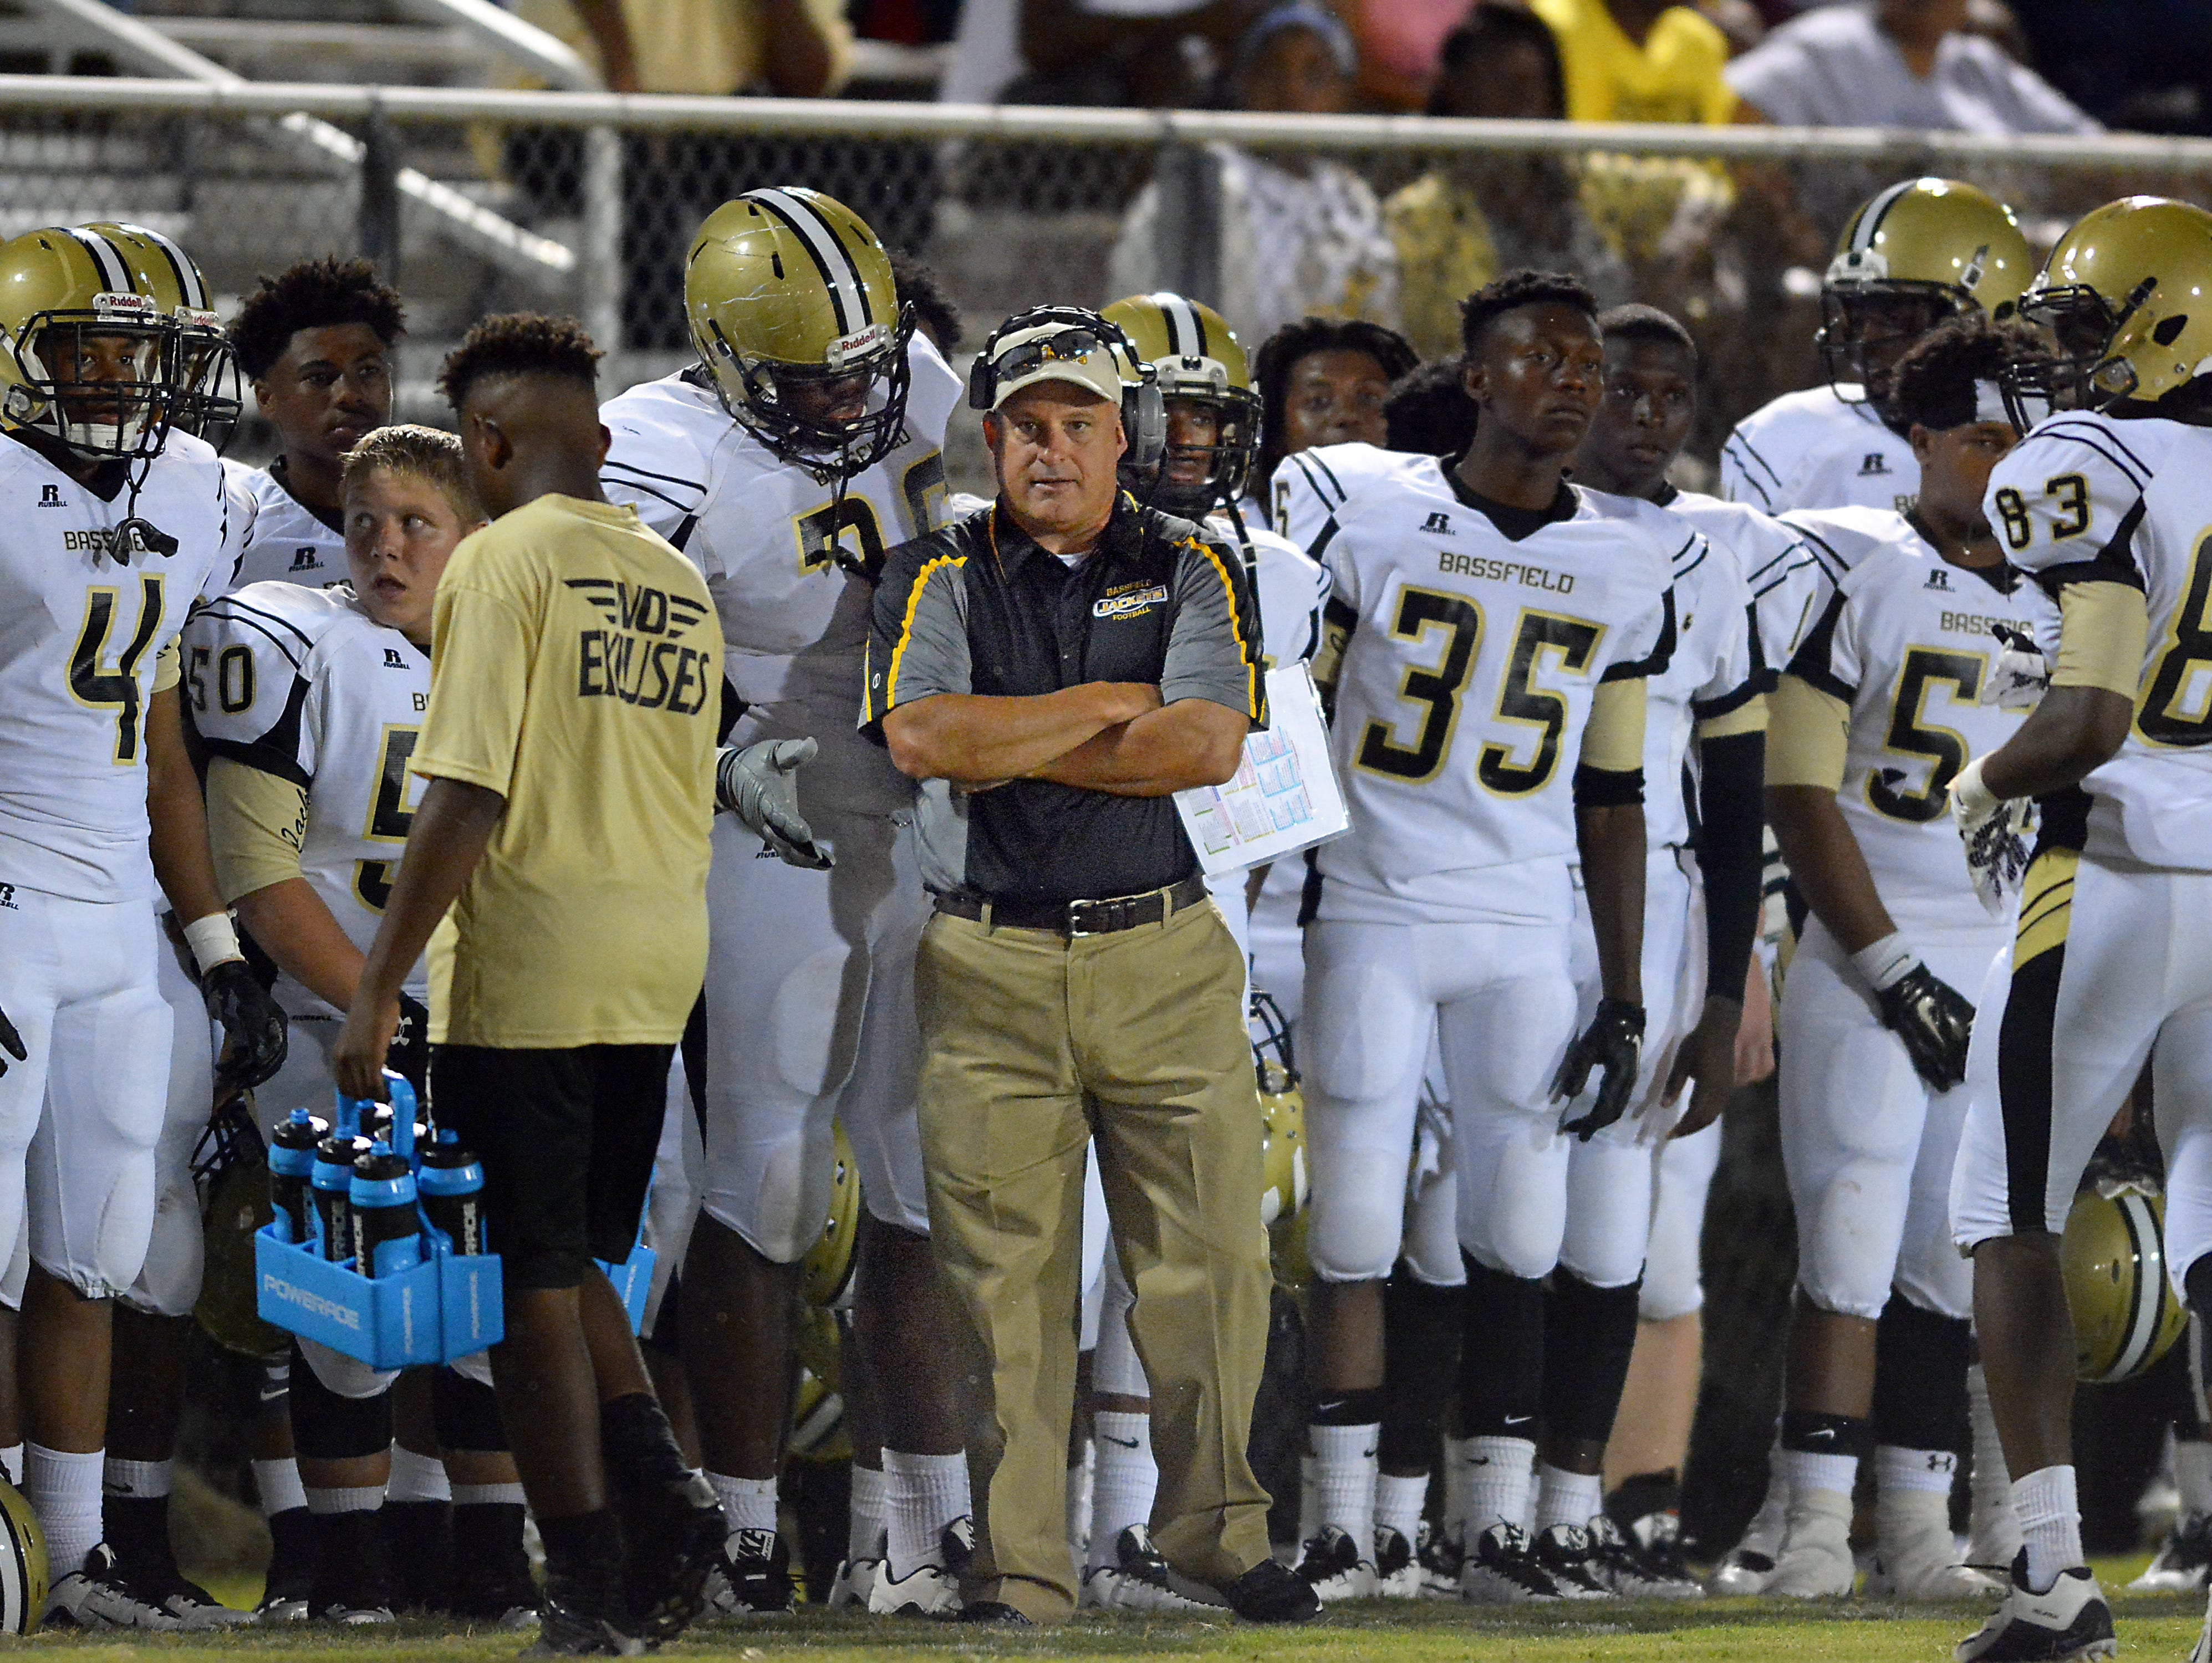 Bassfield coach Lance Mancuso's Yellowjackets face Bay Springs for the Class 2A South State Championship.